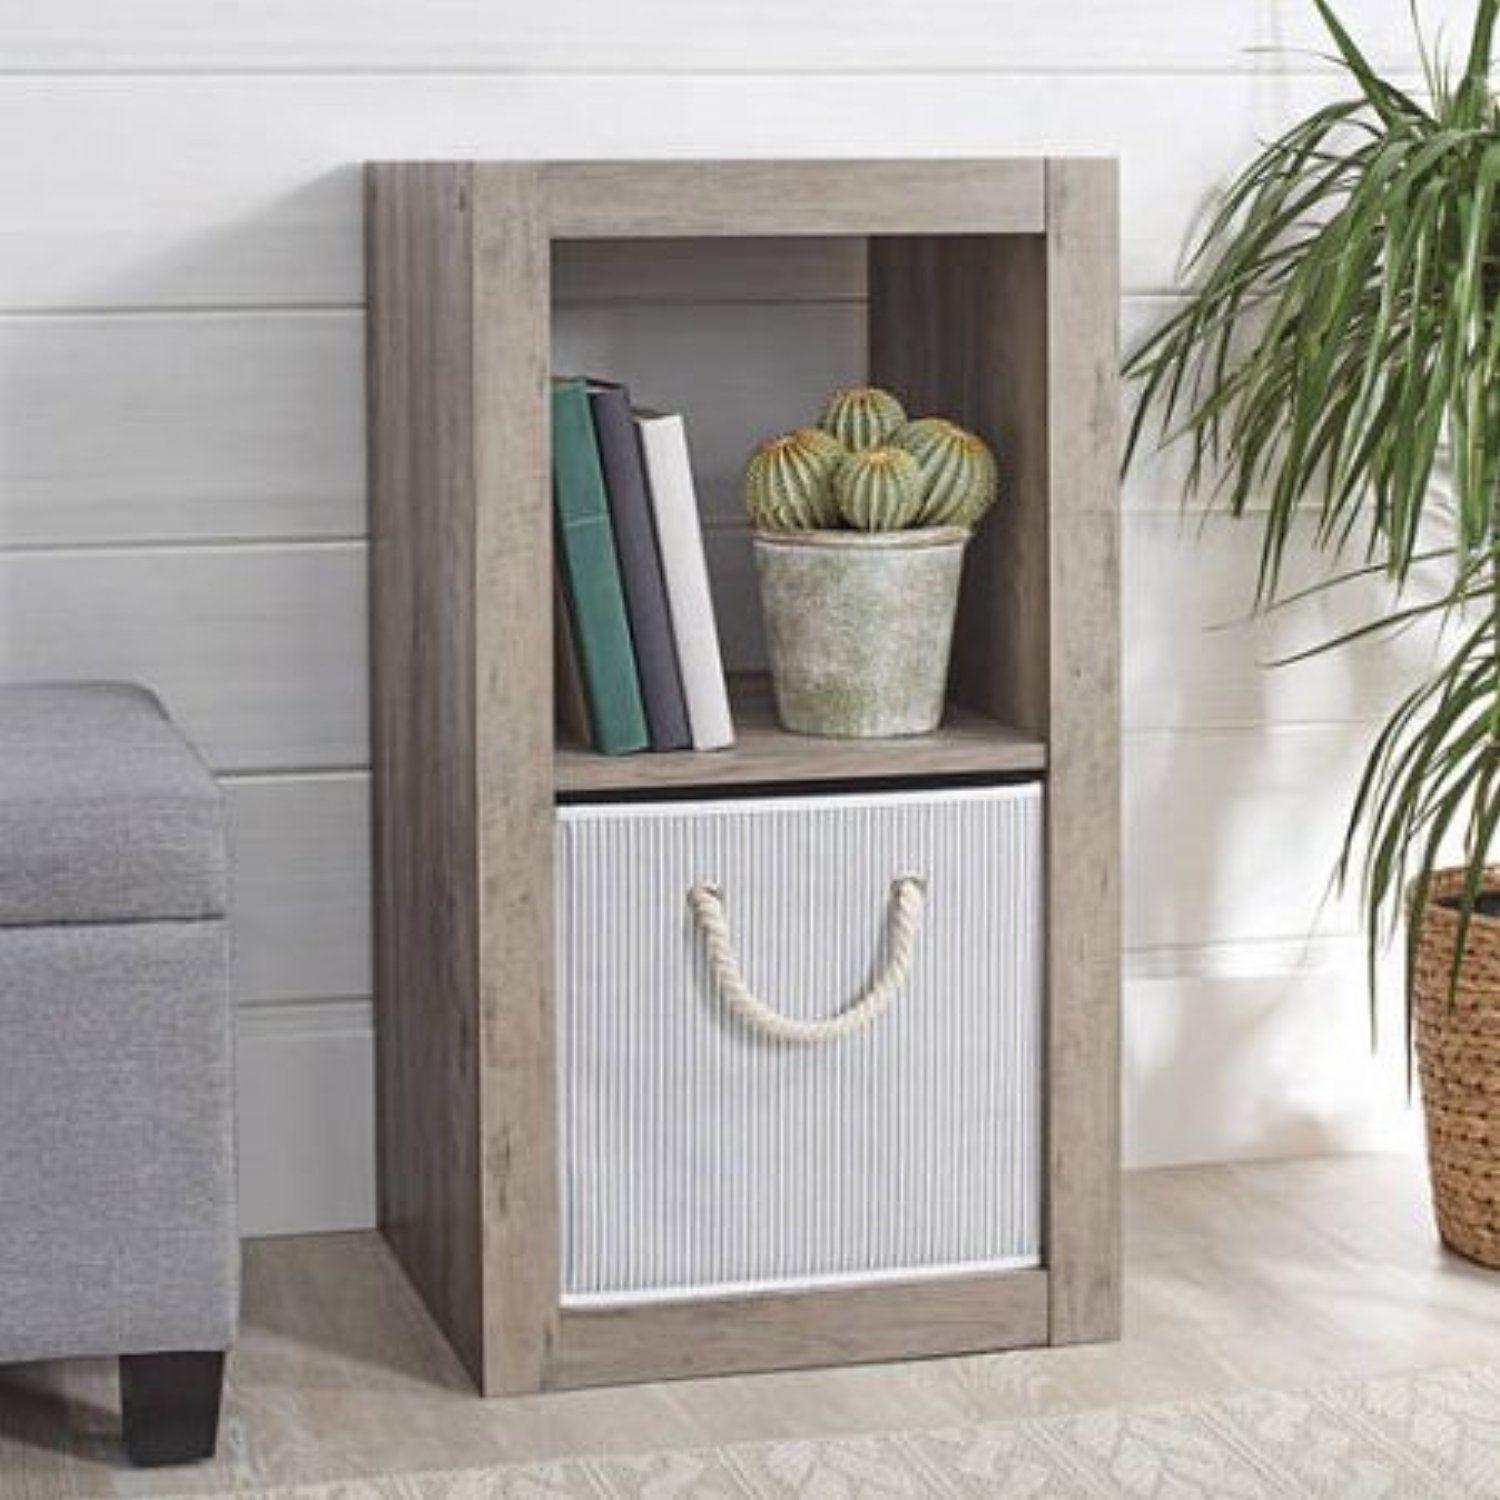 better homes and gardens cube organizer rustic gray read accent table more reviews the product visiting link this affiliate beautiful wall clocks brass bar pub set coffee bathroom